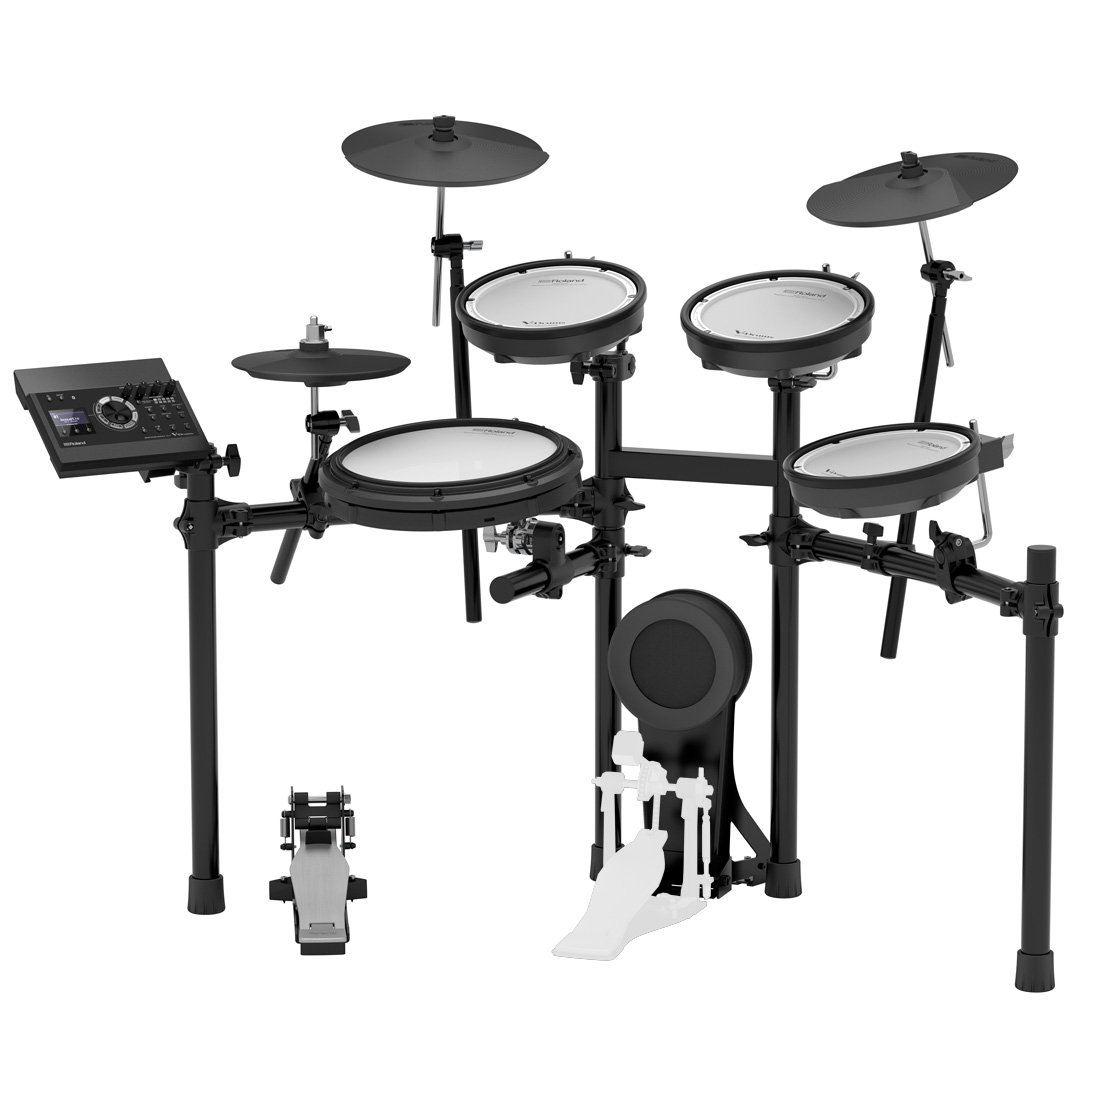 殿堂 Roland TD-17KV-S 電子ドラム TD-17KV-S Roland ローランド V-Drums Kit V-Drums B07CWBCNZ4, イチカイマチ:0488fa4d --- stafftracking.mycarebee.com